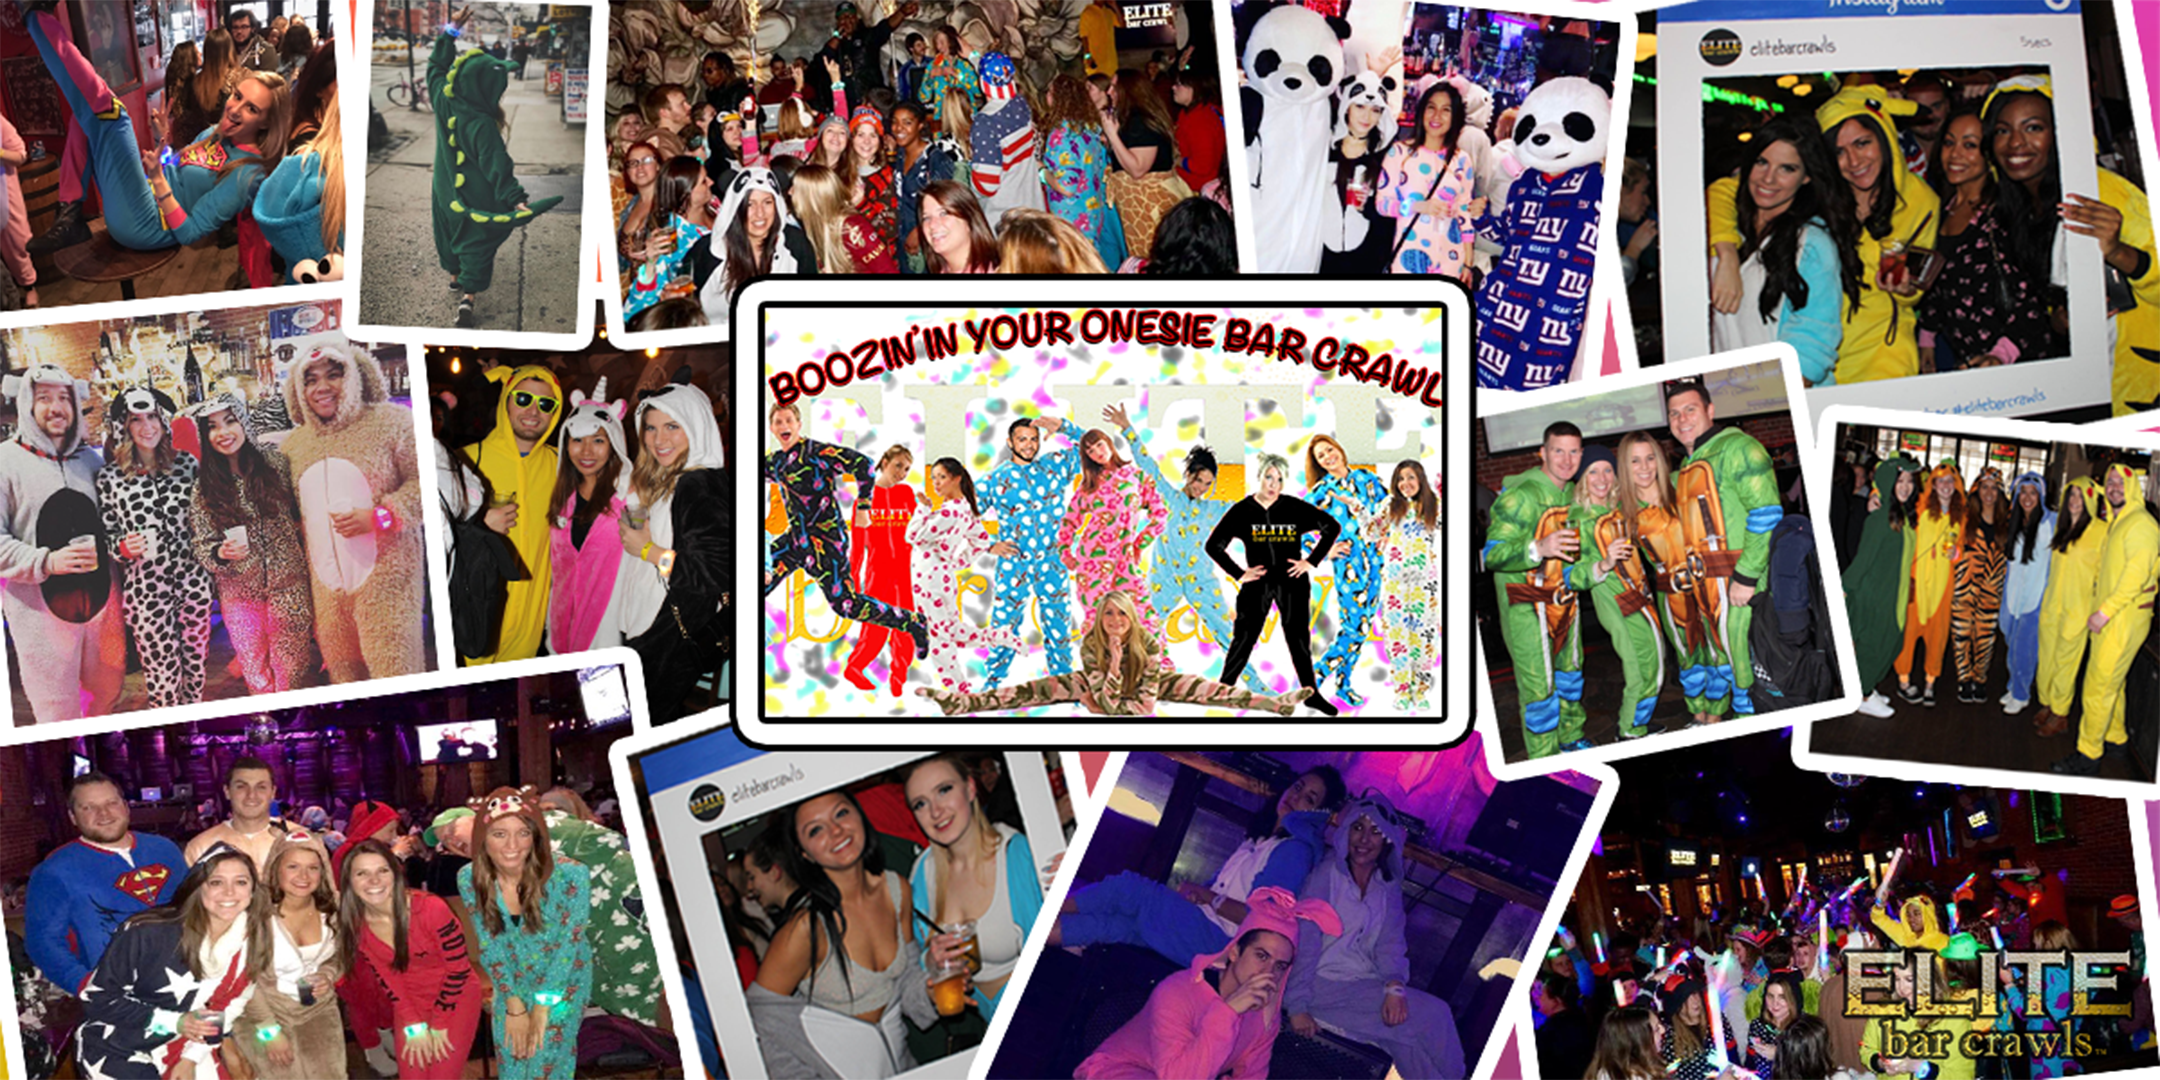 Boozin' In Your Onesie Bar Crawl - Syracuse,